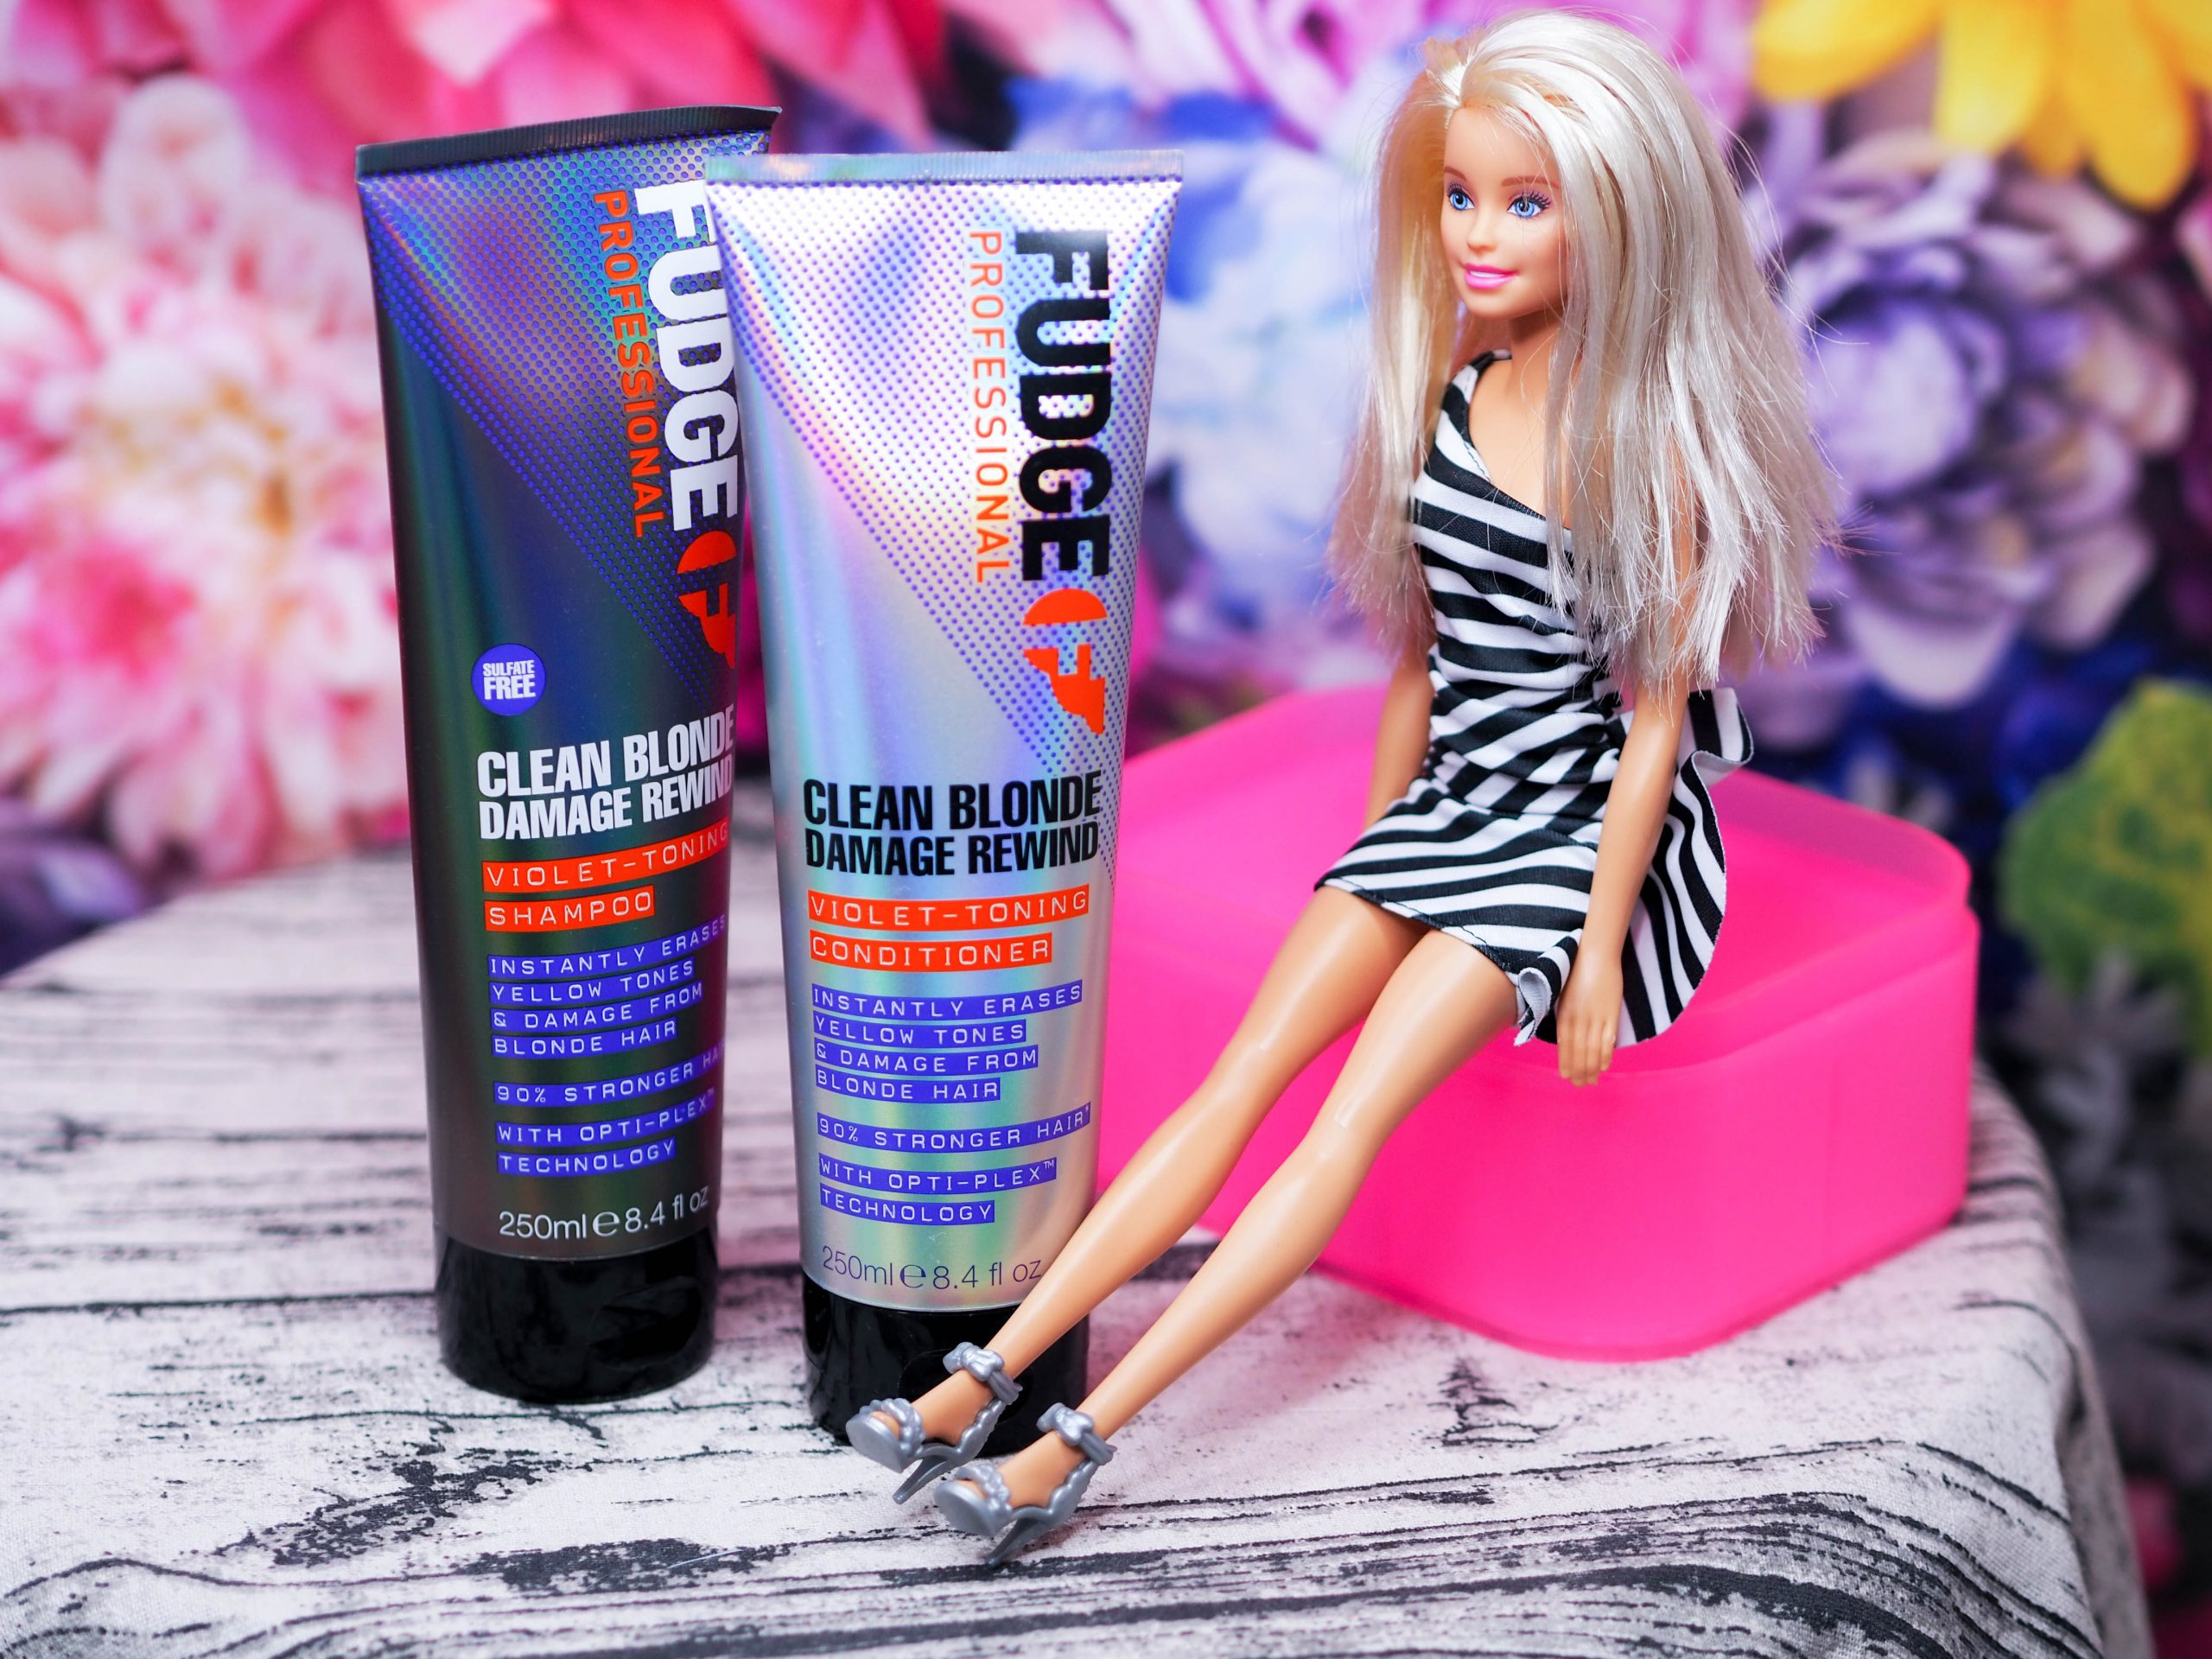 Fudge Clean Blonde Damage Rewind Violet Toning Shampoo and Conditioner